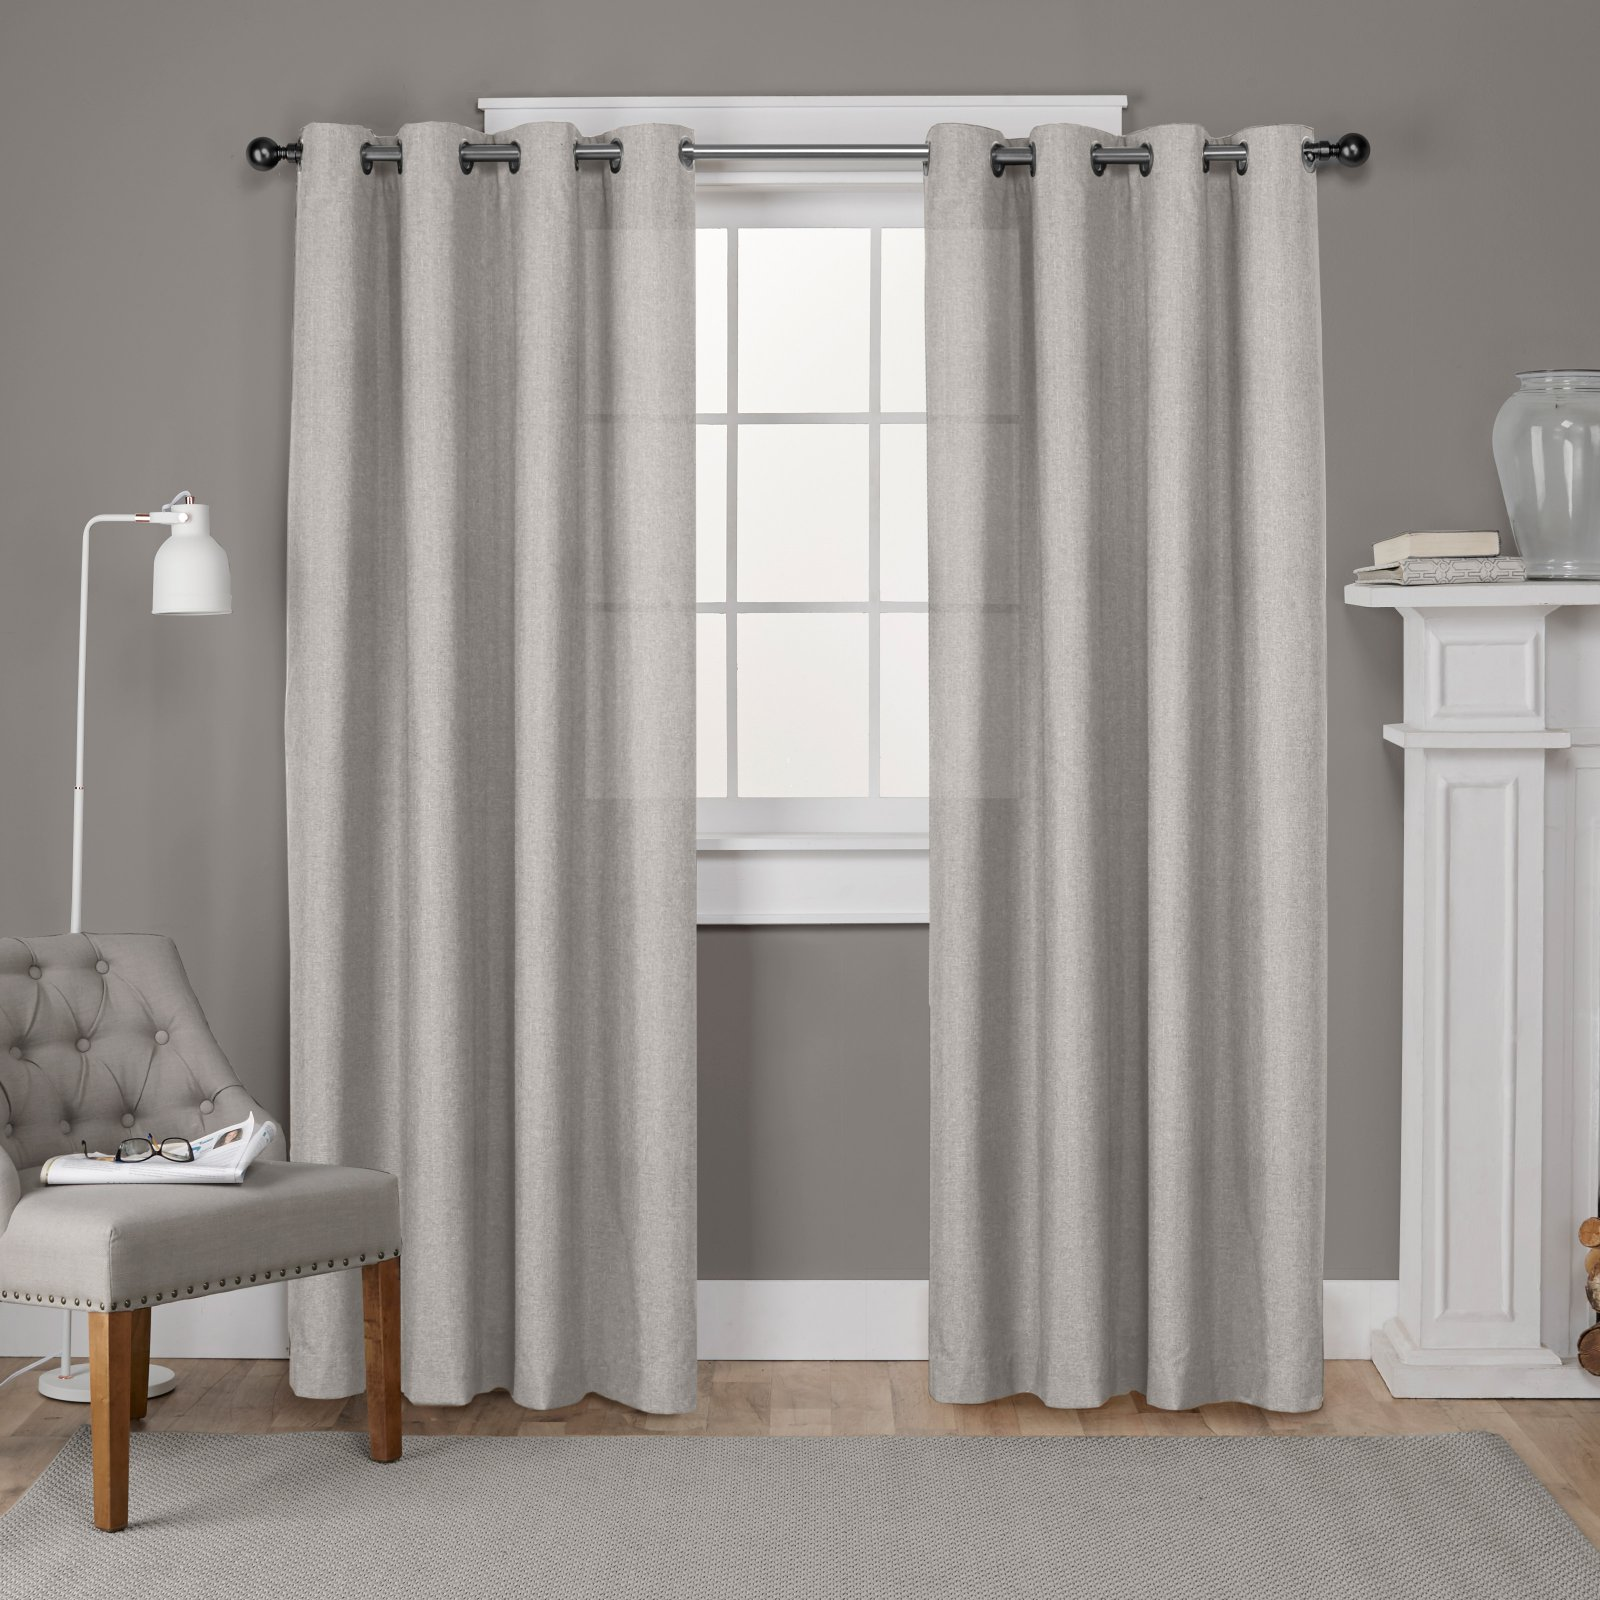 Exclusive Home Loha Linen Window Curtain Panel Pair with Grommet Top